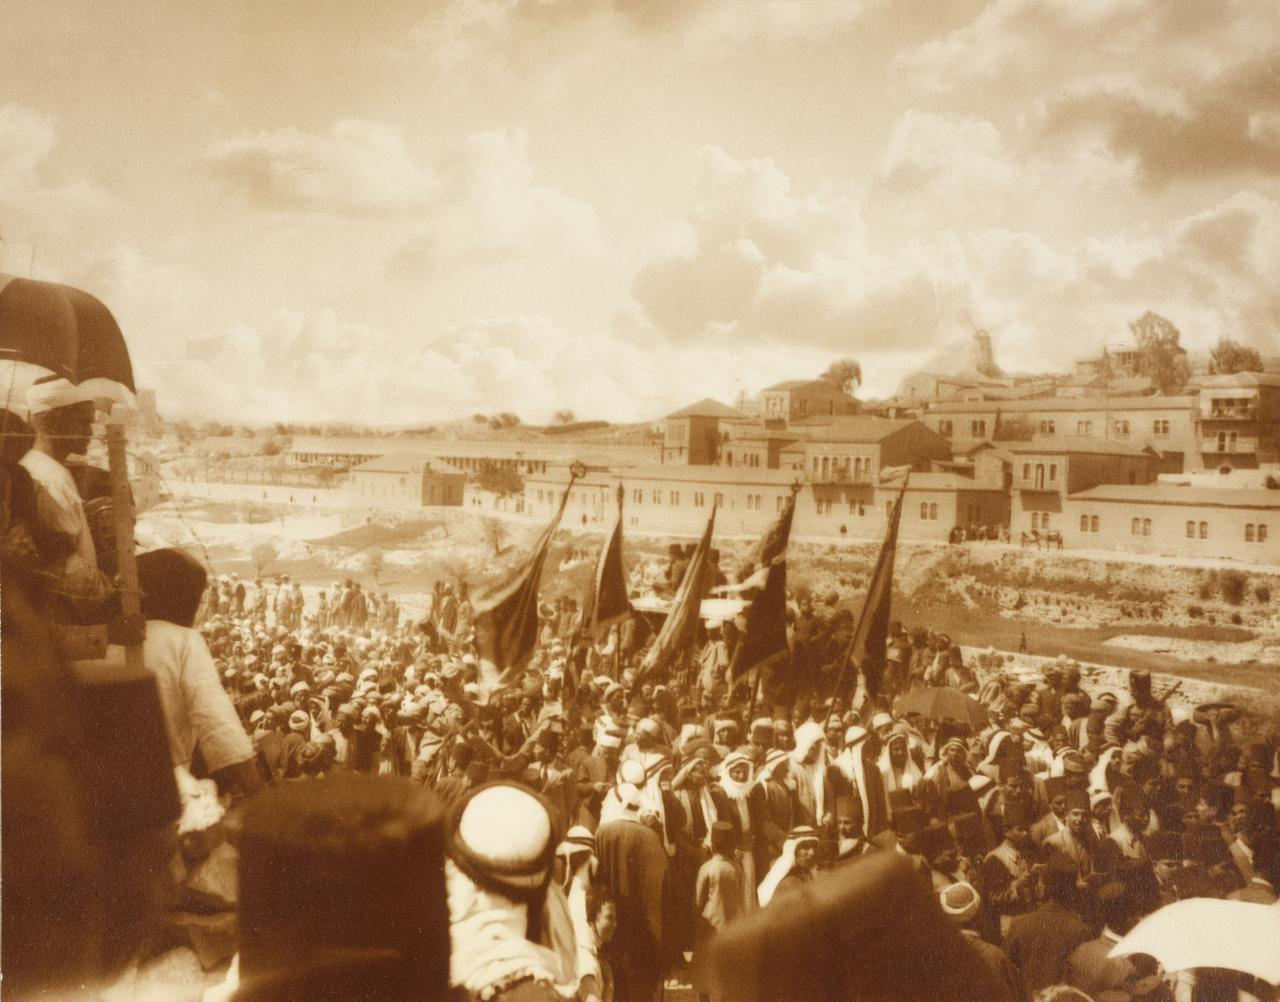 The feast of Nebi Mussa, procession from Hebron to Jerusalem, Palestine